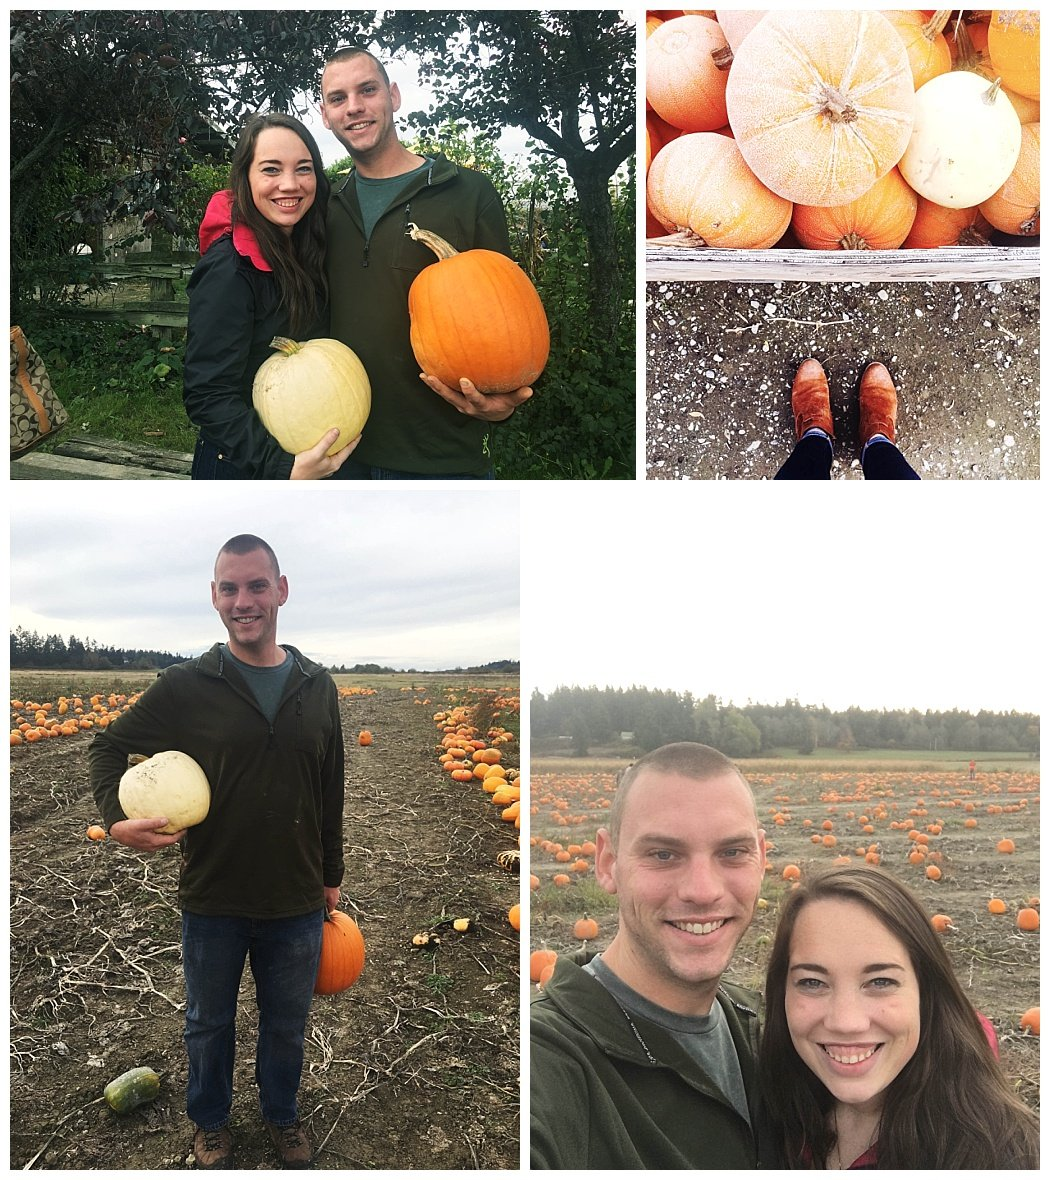 Fall is here! So it's time to jump in and enjoy this time of year with 20 great fall date night ideas!